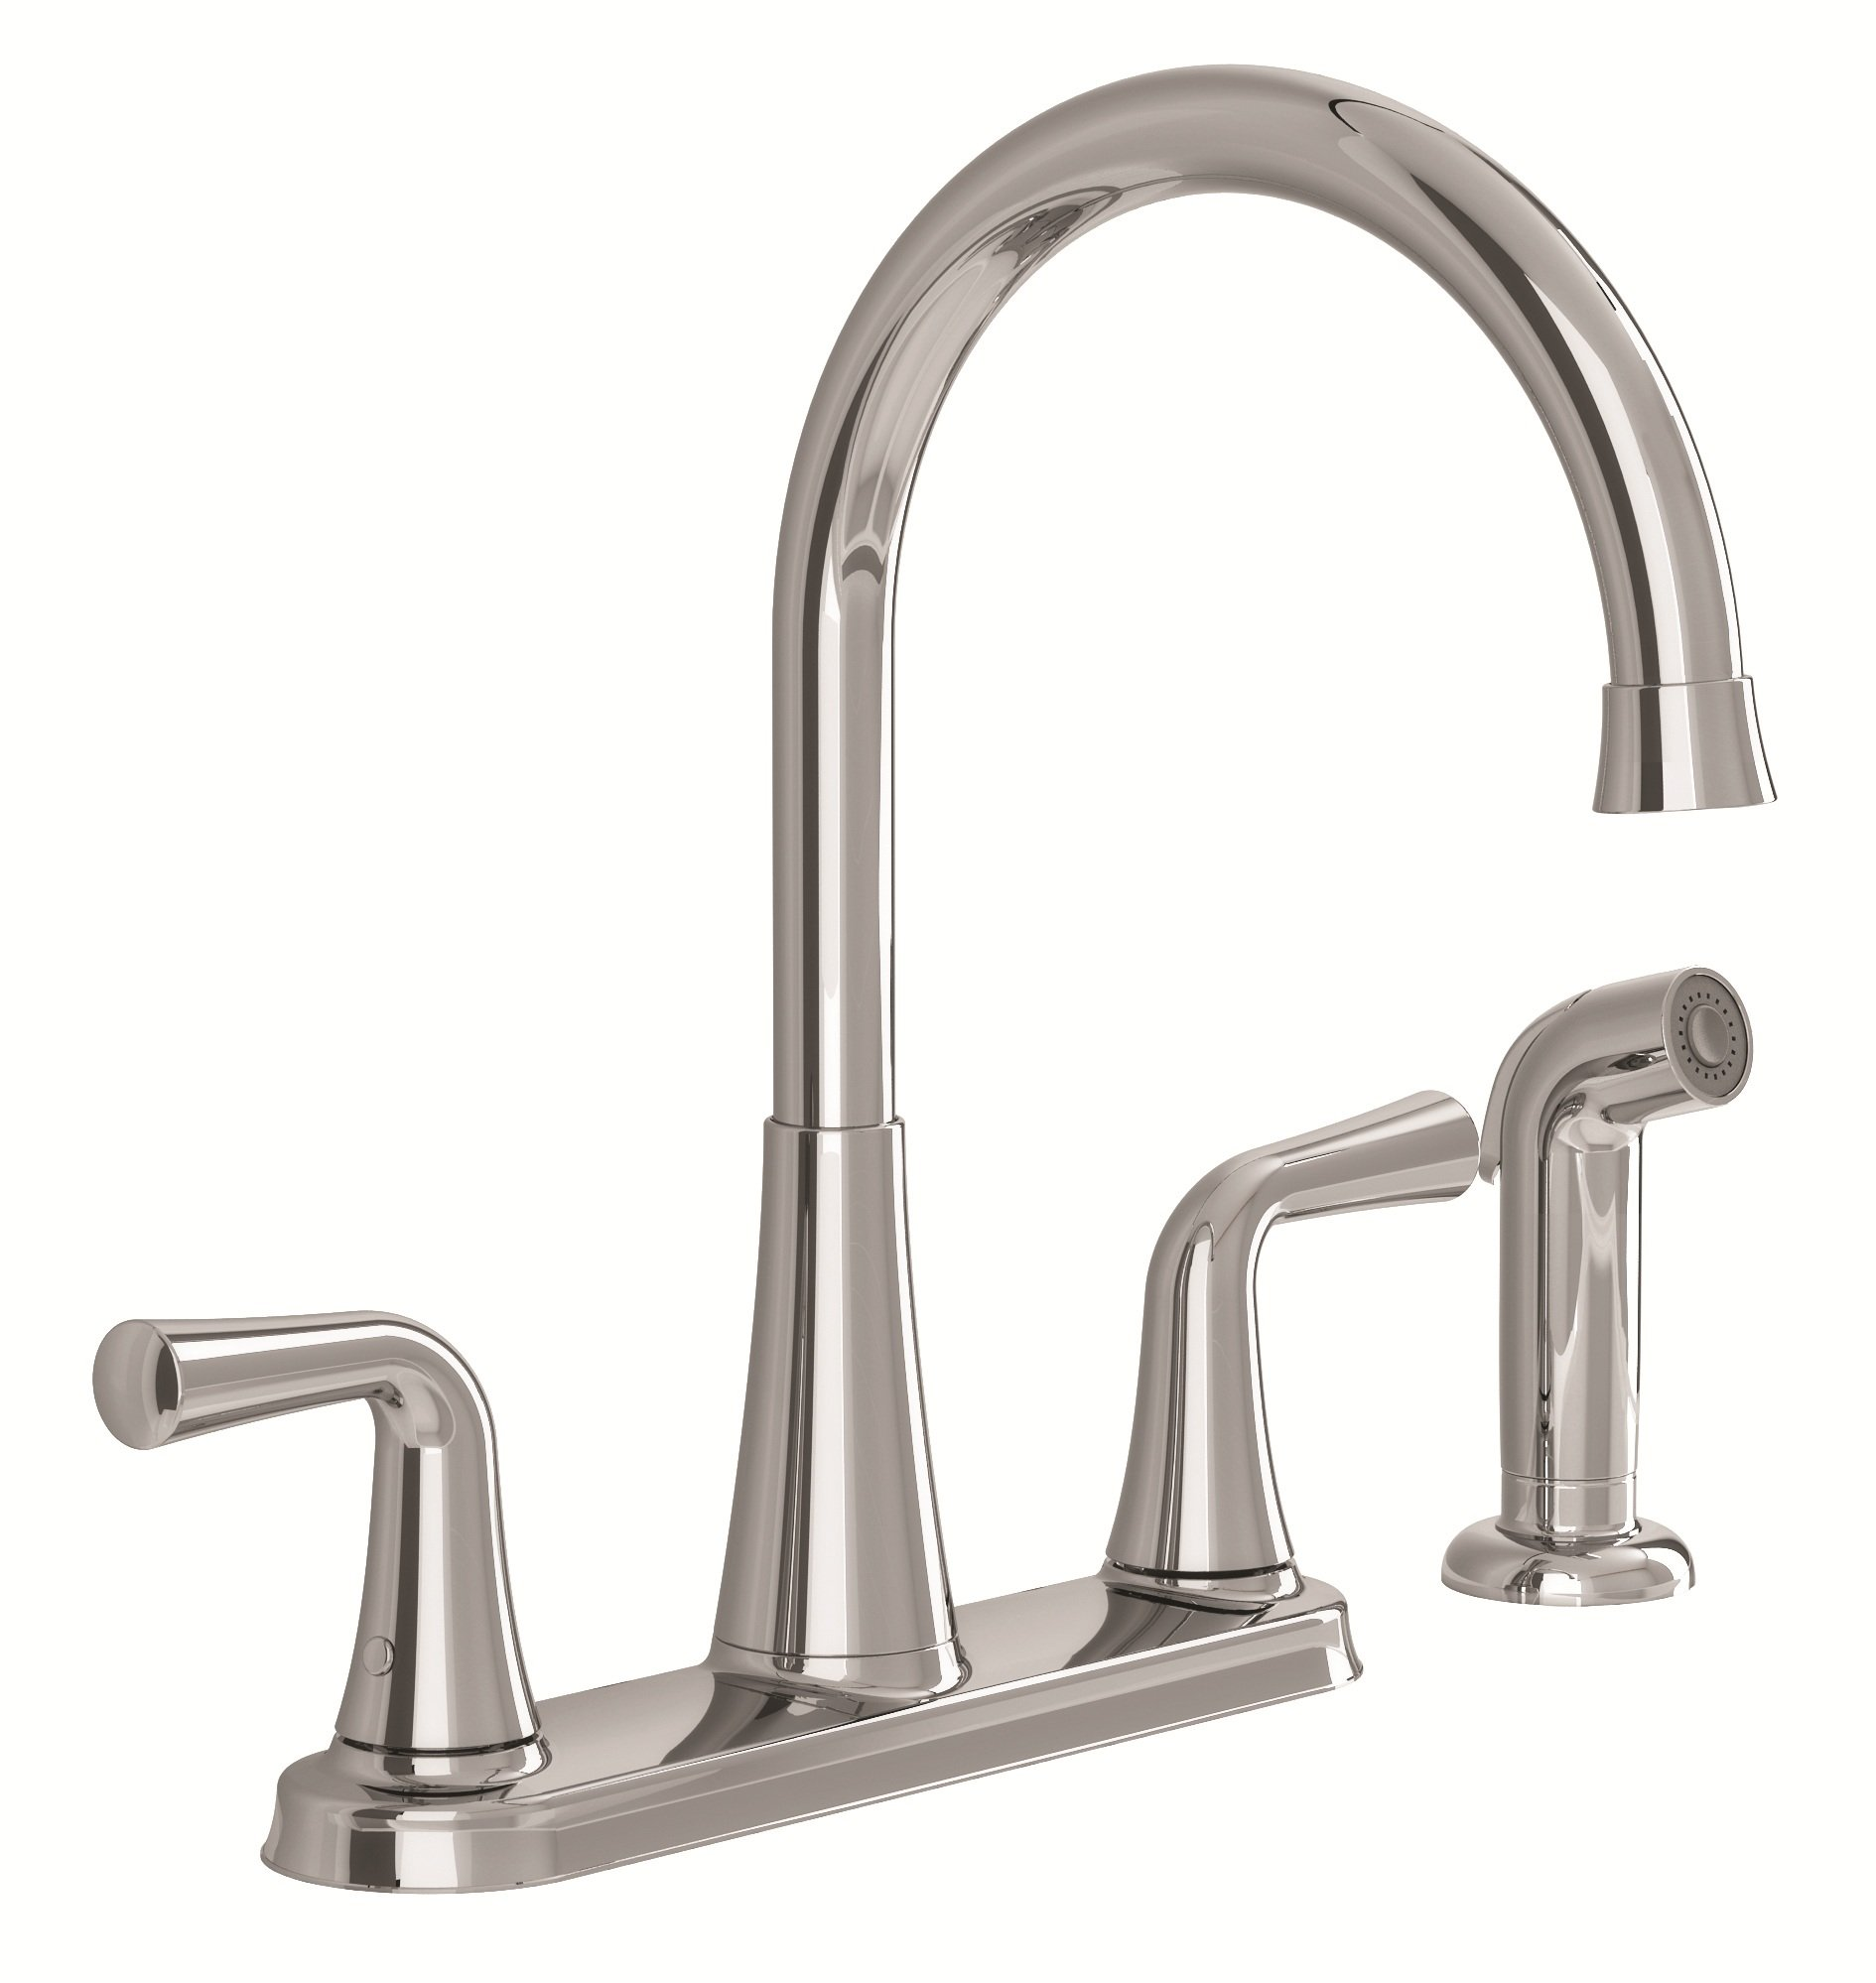 American Standard 9089501 002 Angeline Two Handle Kitchen Faucet